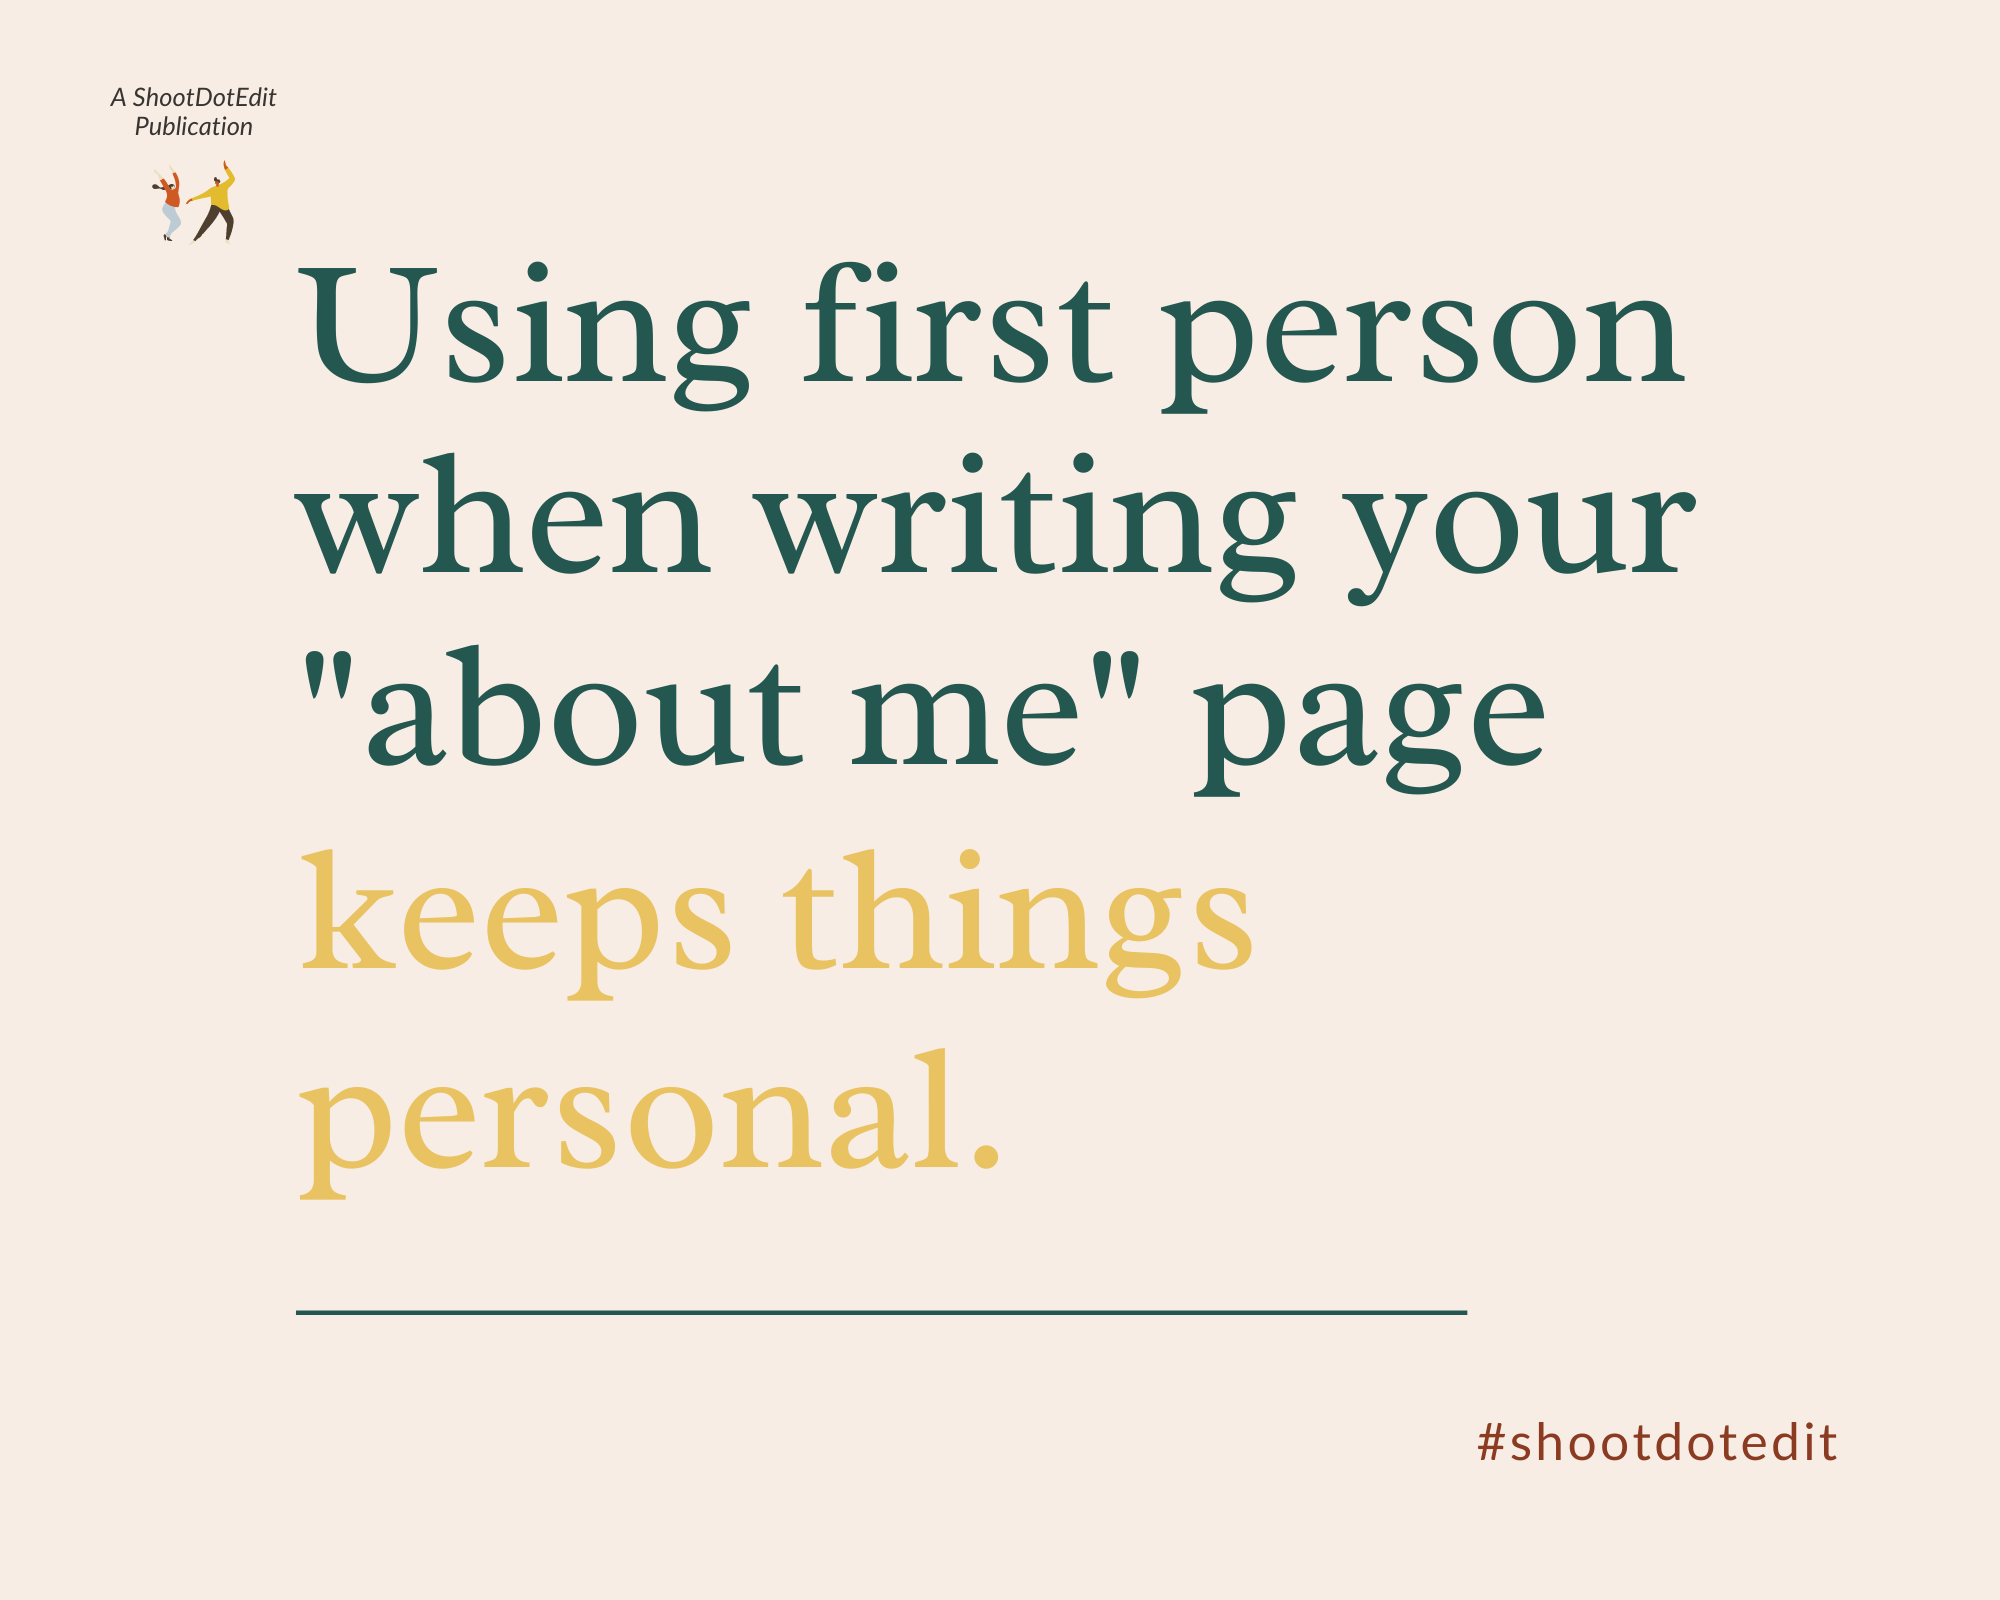 Infographic stating using first person when writing your about me page keeps things personal